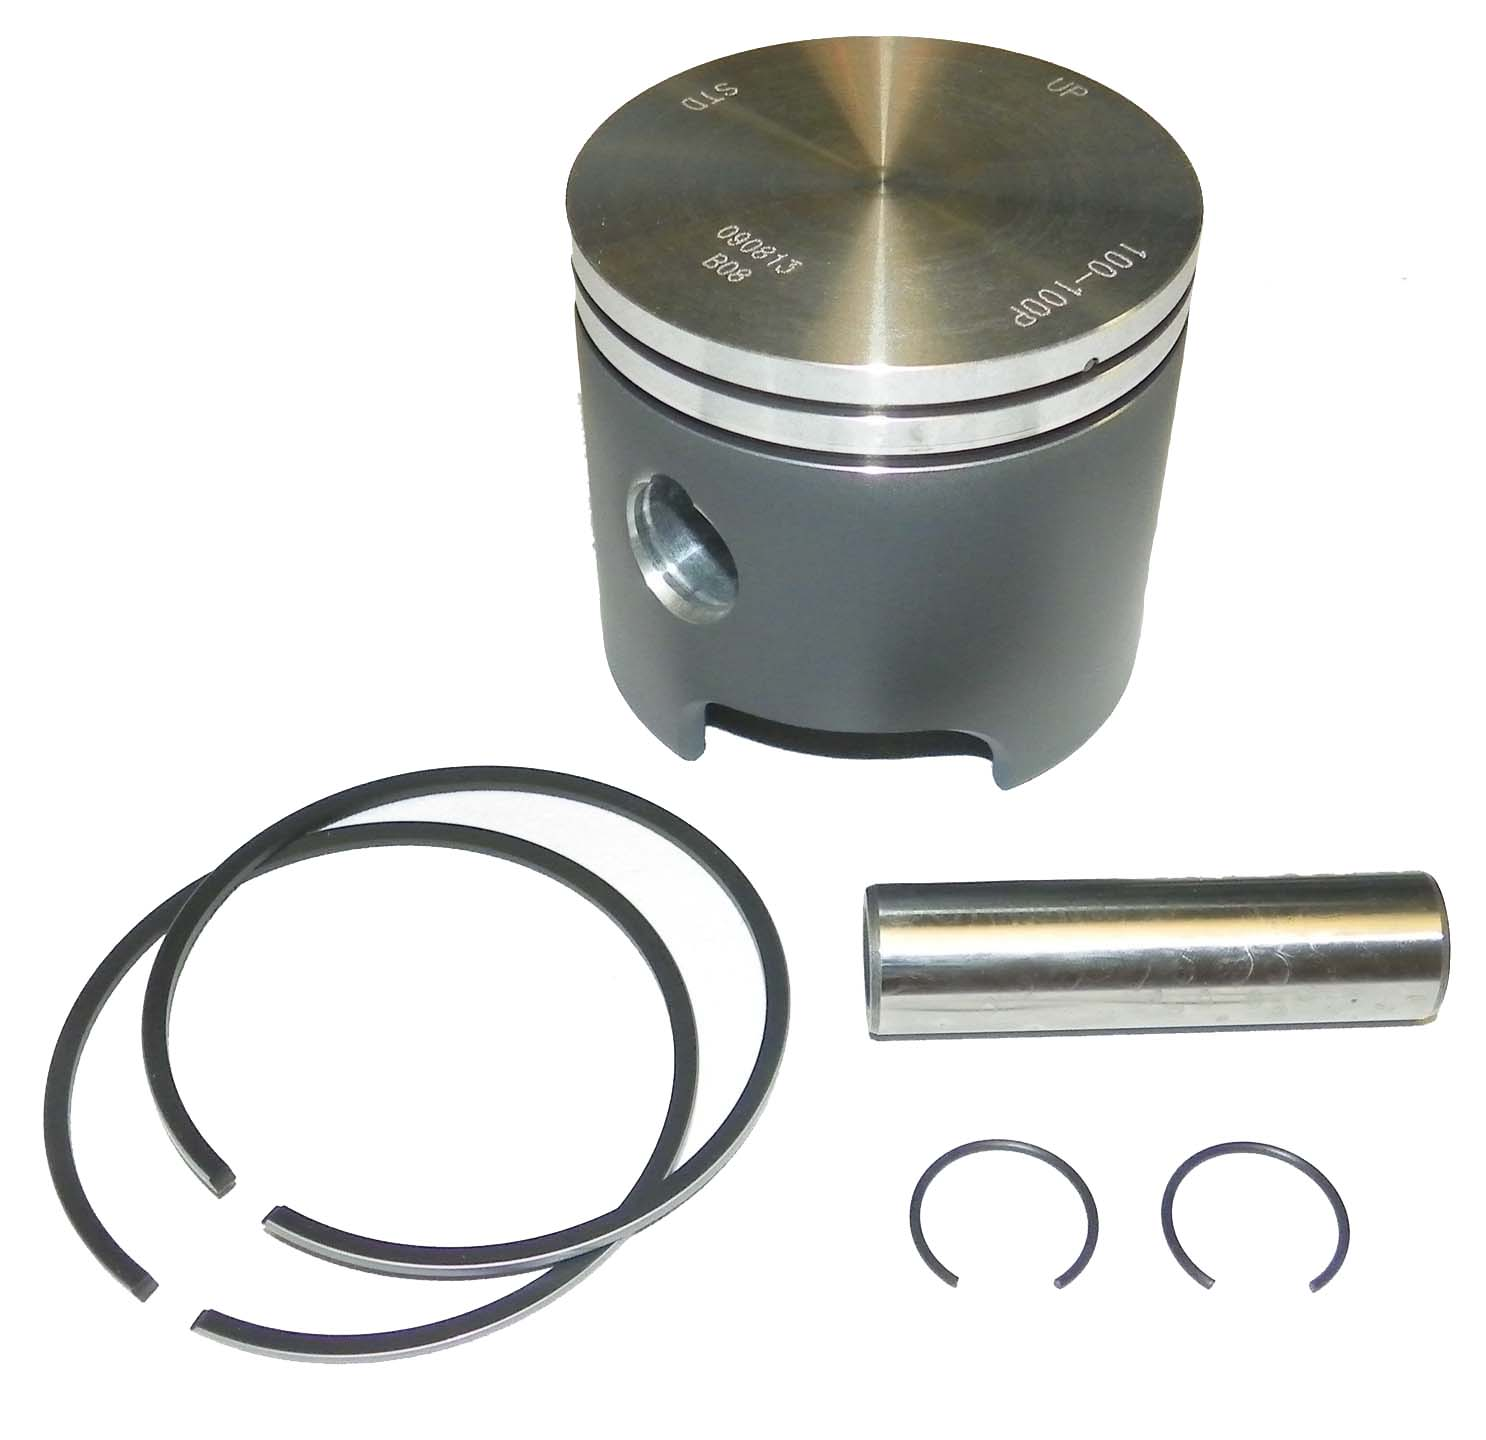 Piston - Johnson / Evinrude 25-60 Hp 3.187 (0.030 in)